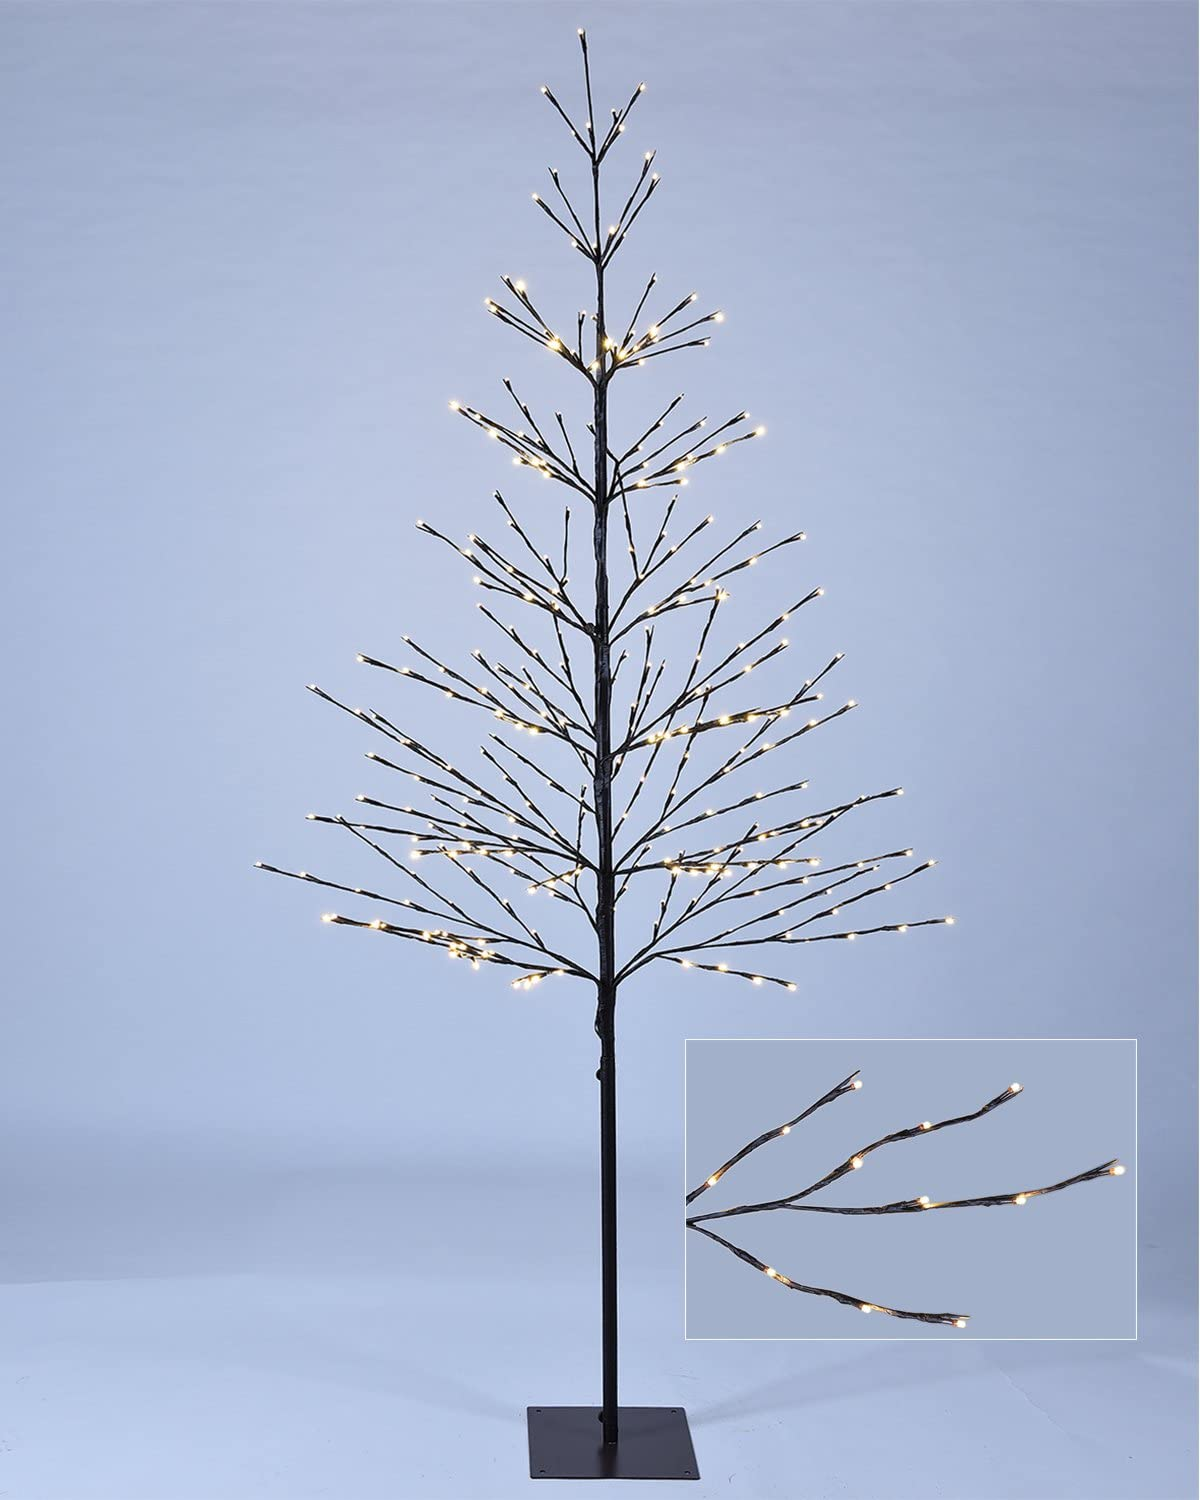 LIGHTSHARE 7 ft. LED Tree - Northern Lights Starlit Tree with 308 Warm White LED Lights, 7 Feet, Brown, Perfect Non-troditional Christmas Tree for Holiday Décor Wedding and Party